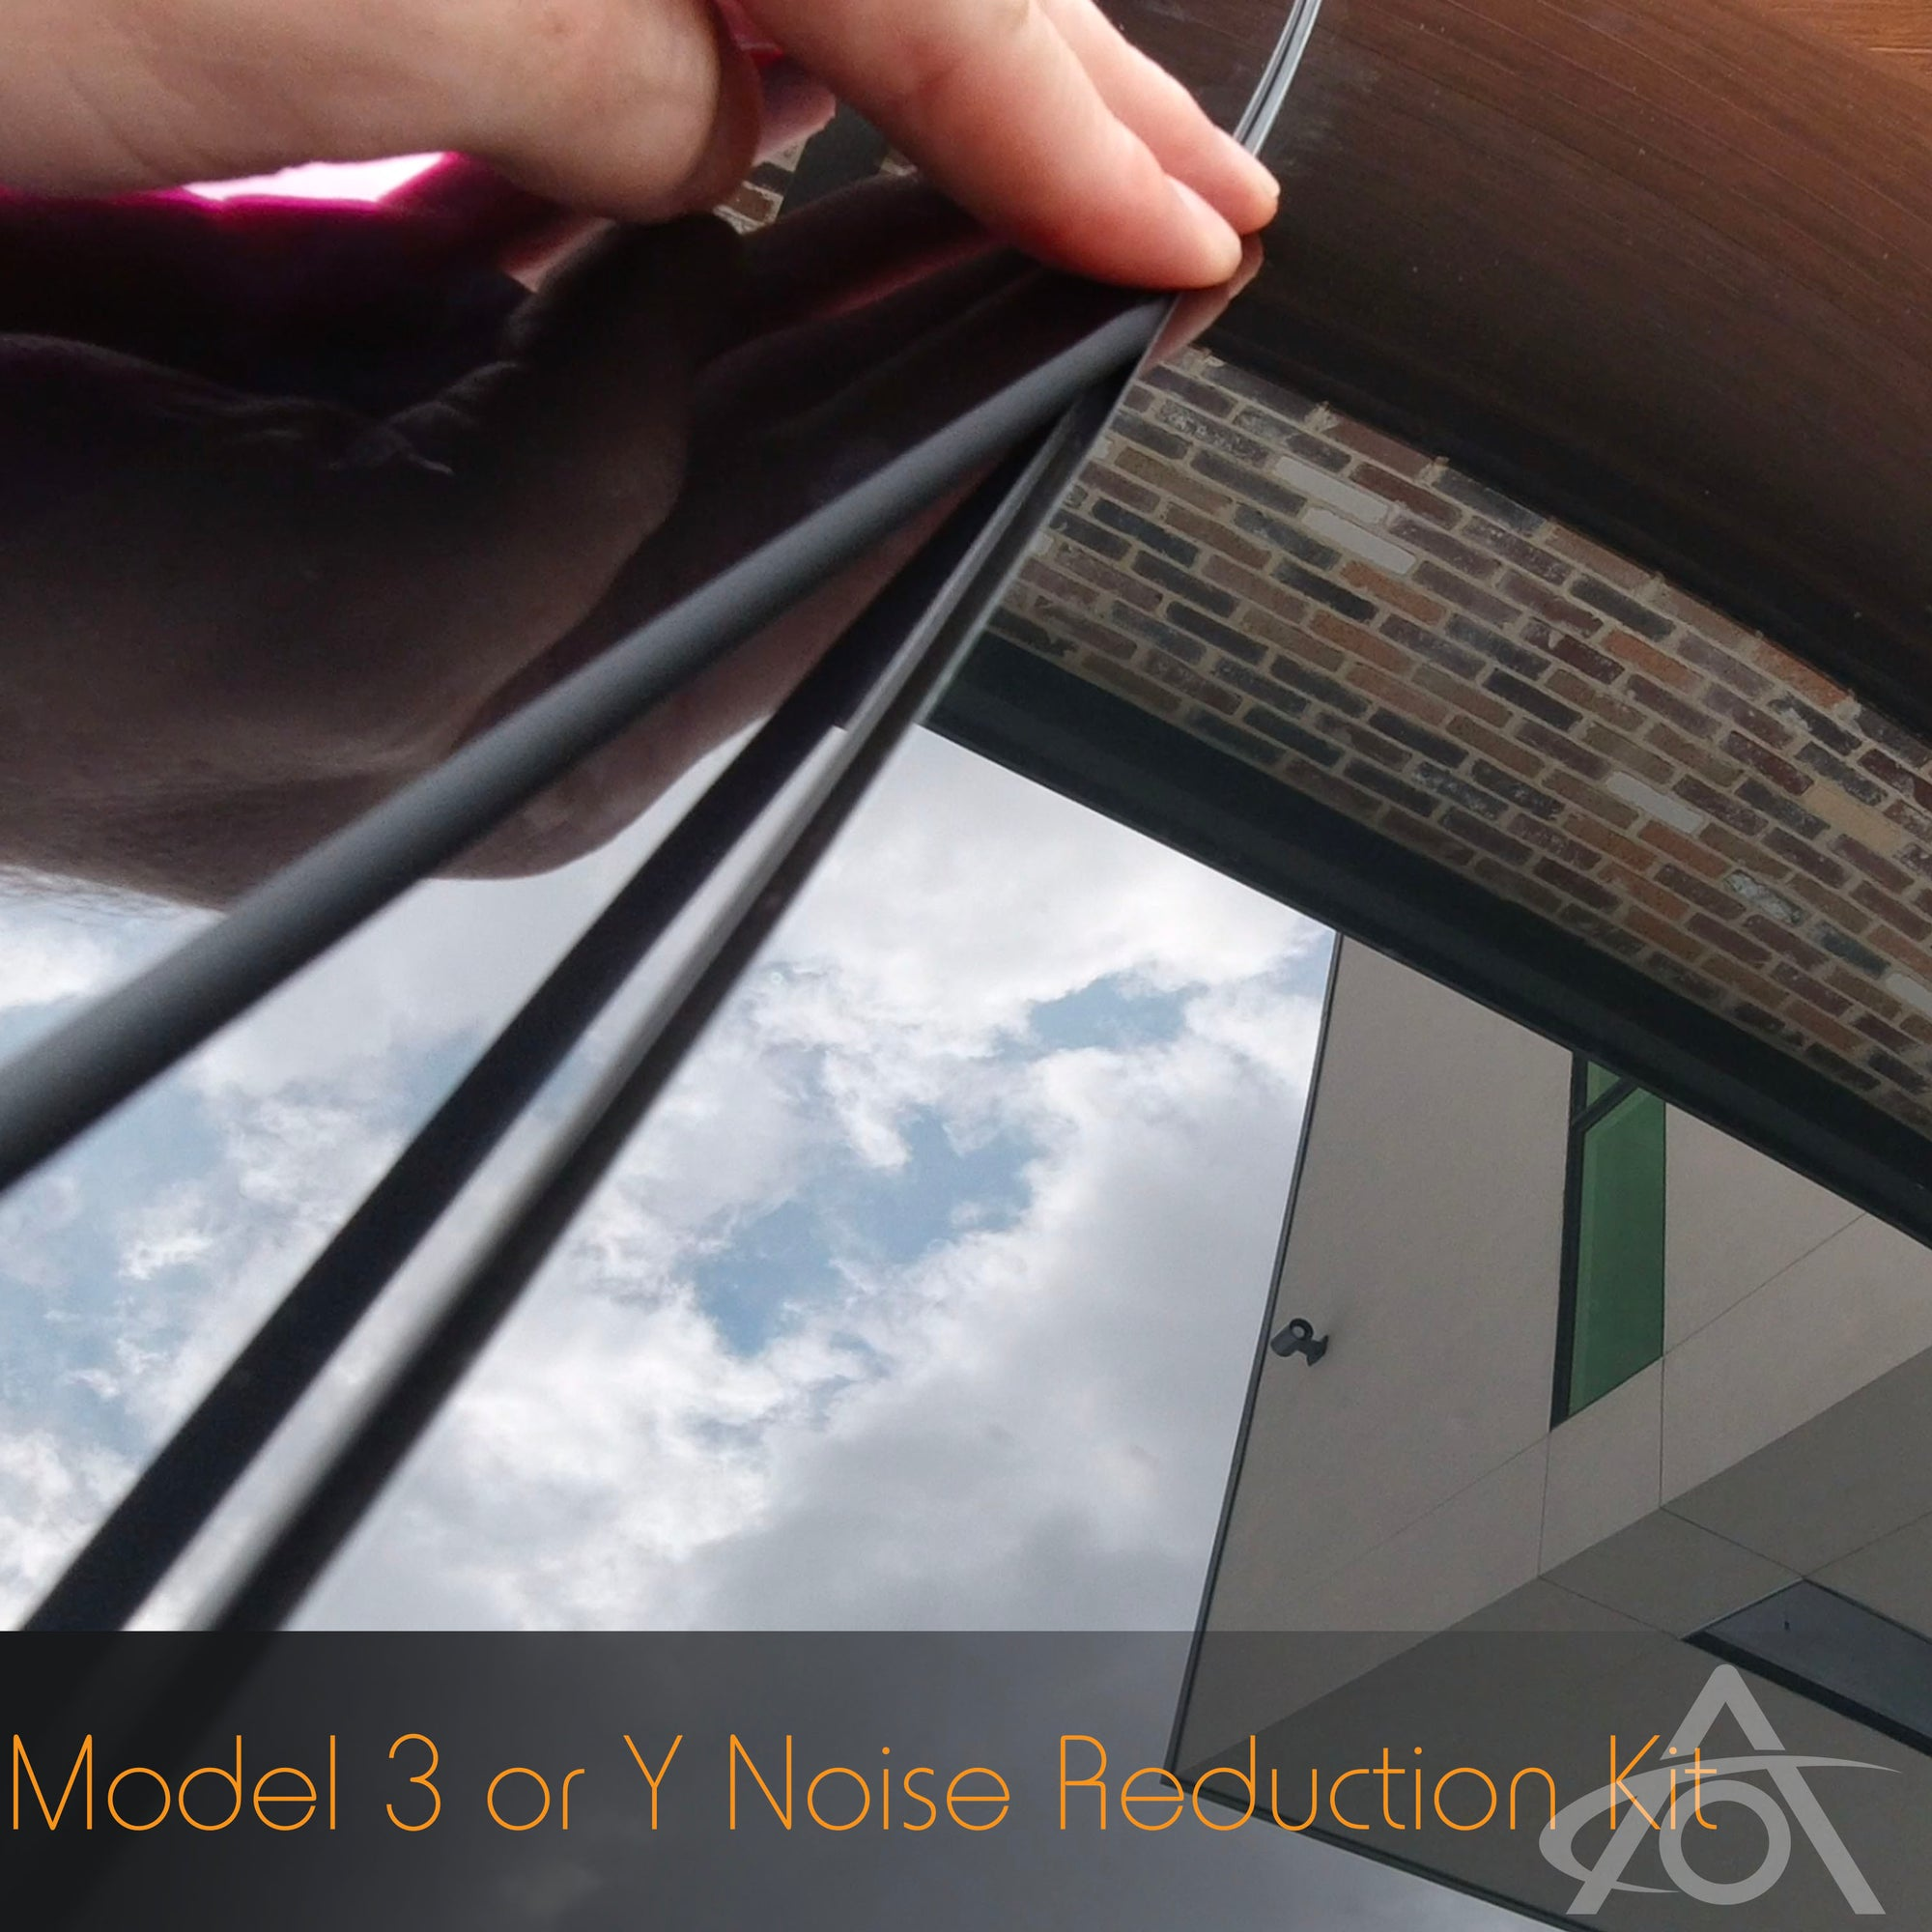 Noise Reduction Kit